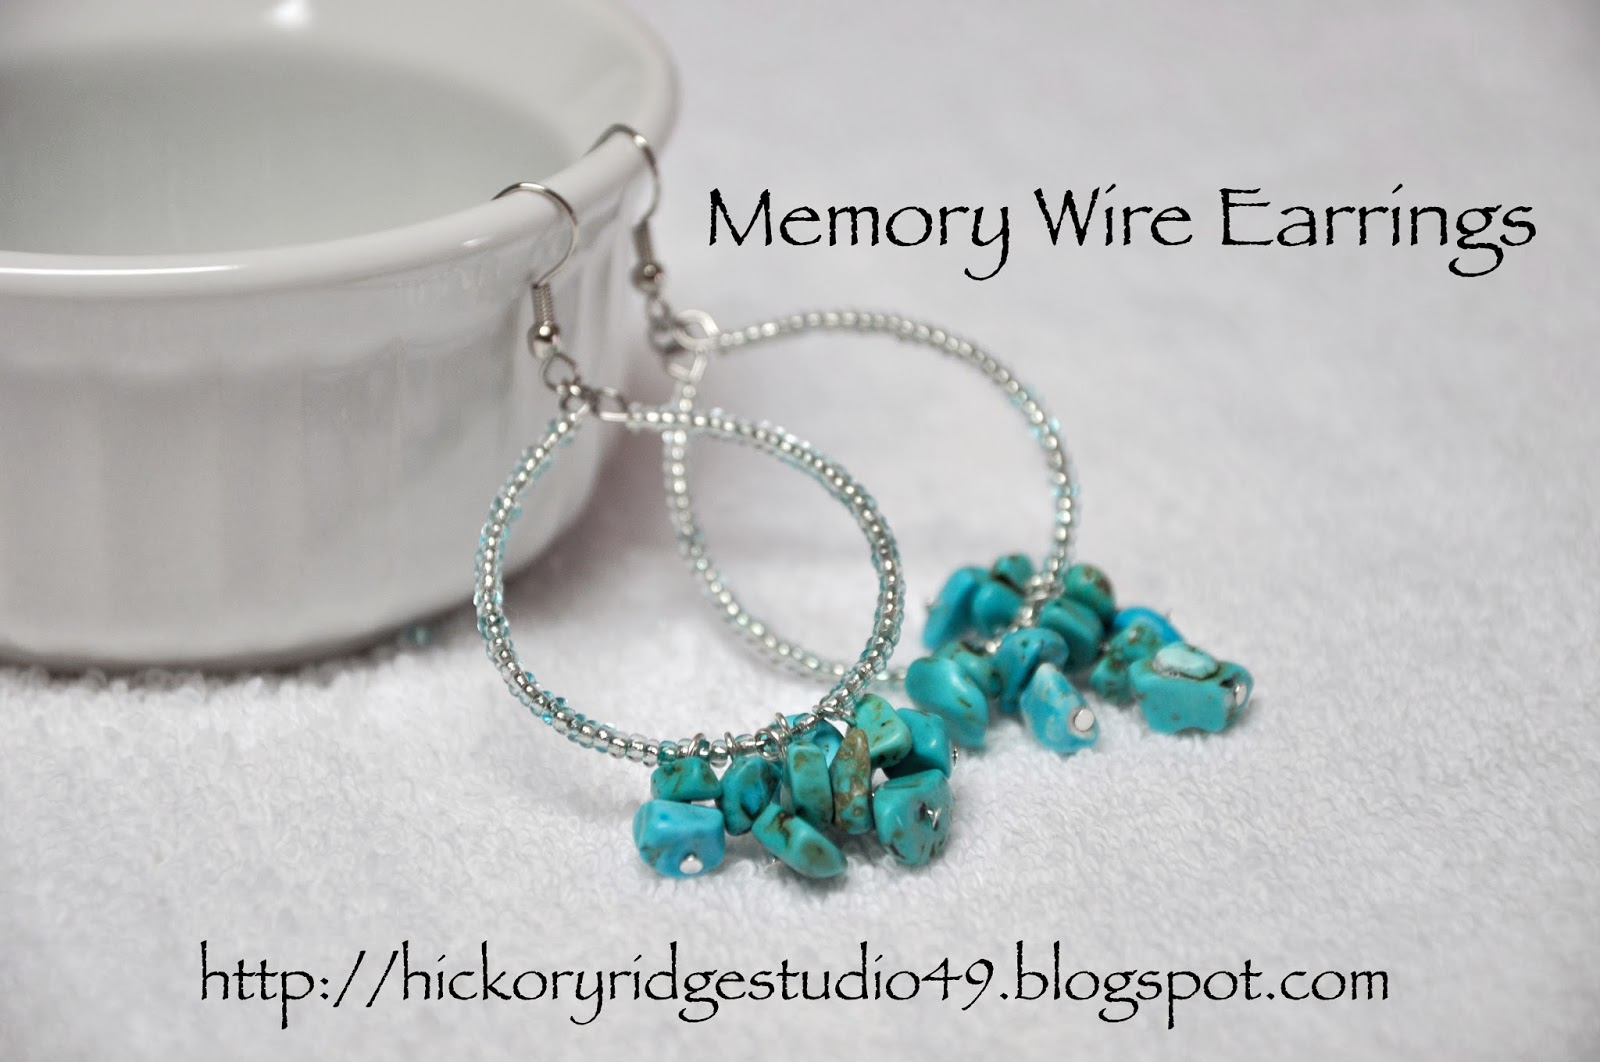 Make it Monday - Memory Wire Earrings